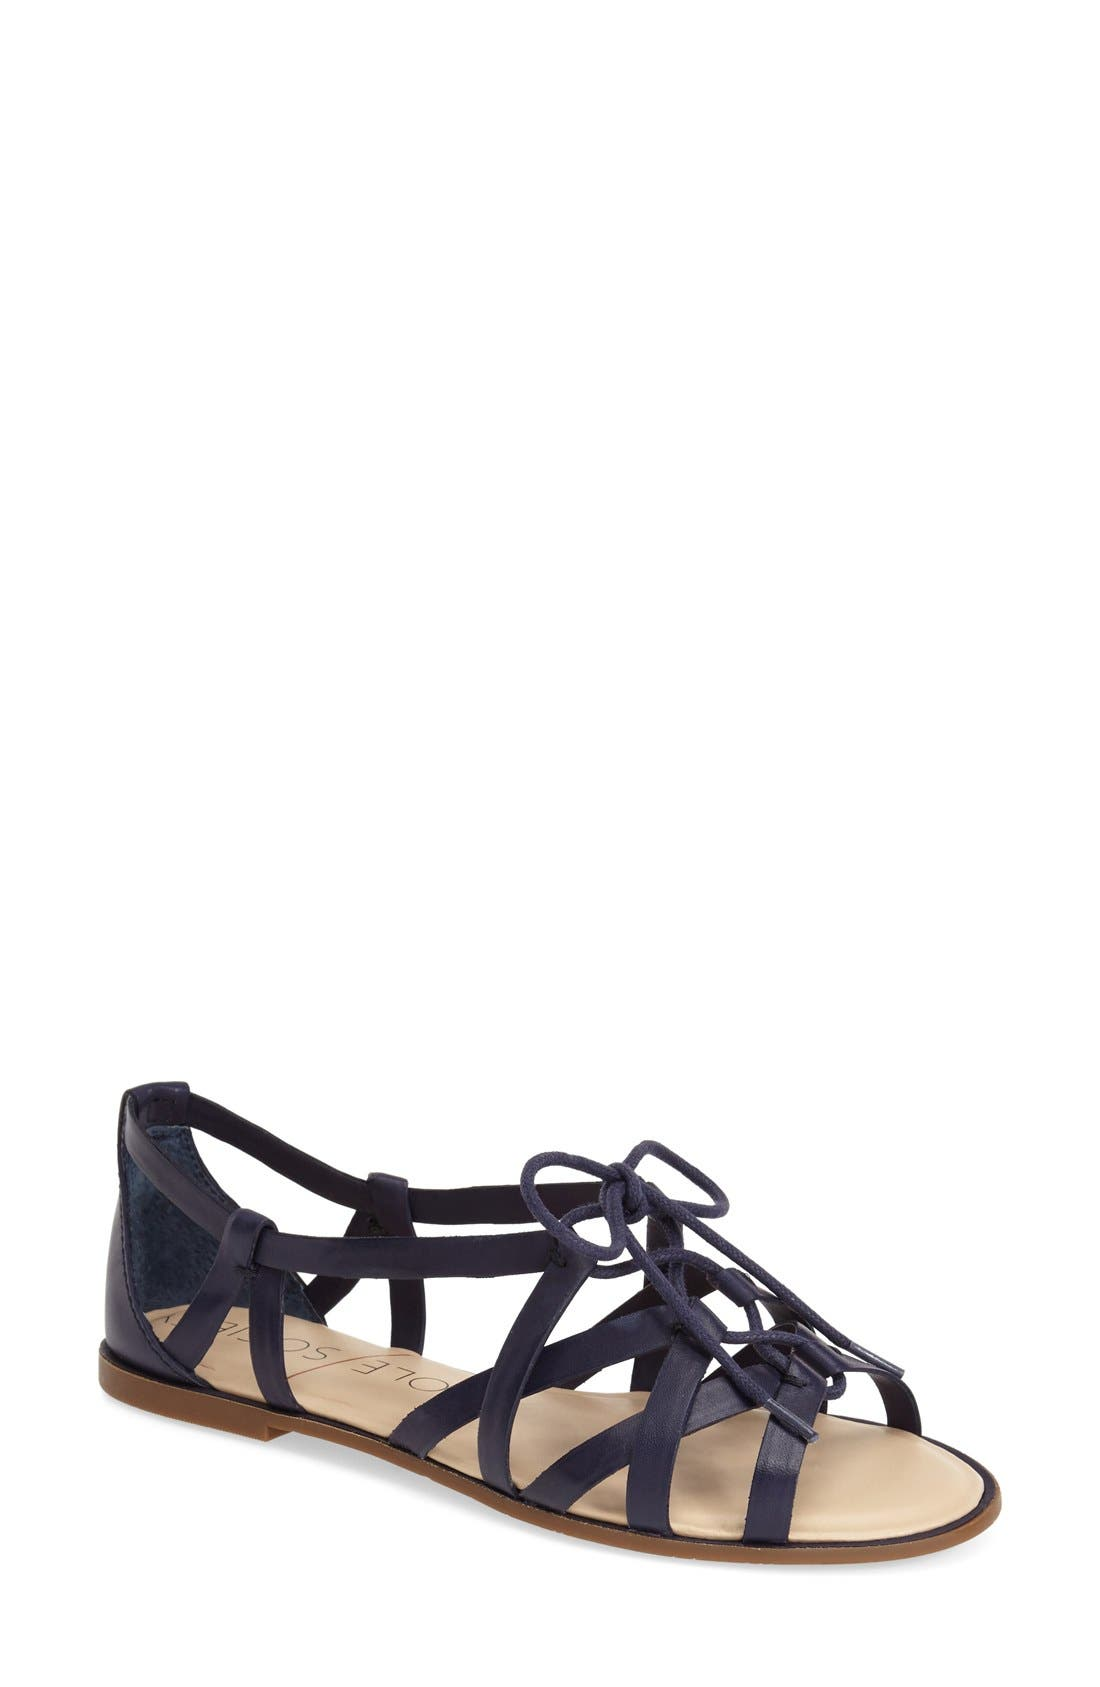 Main Image - Sole Society 'Gillian' Gladiator Sandal (Women)